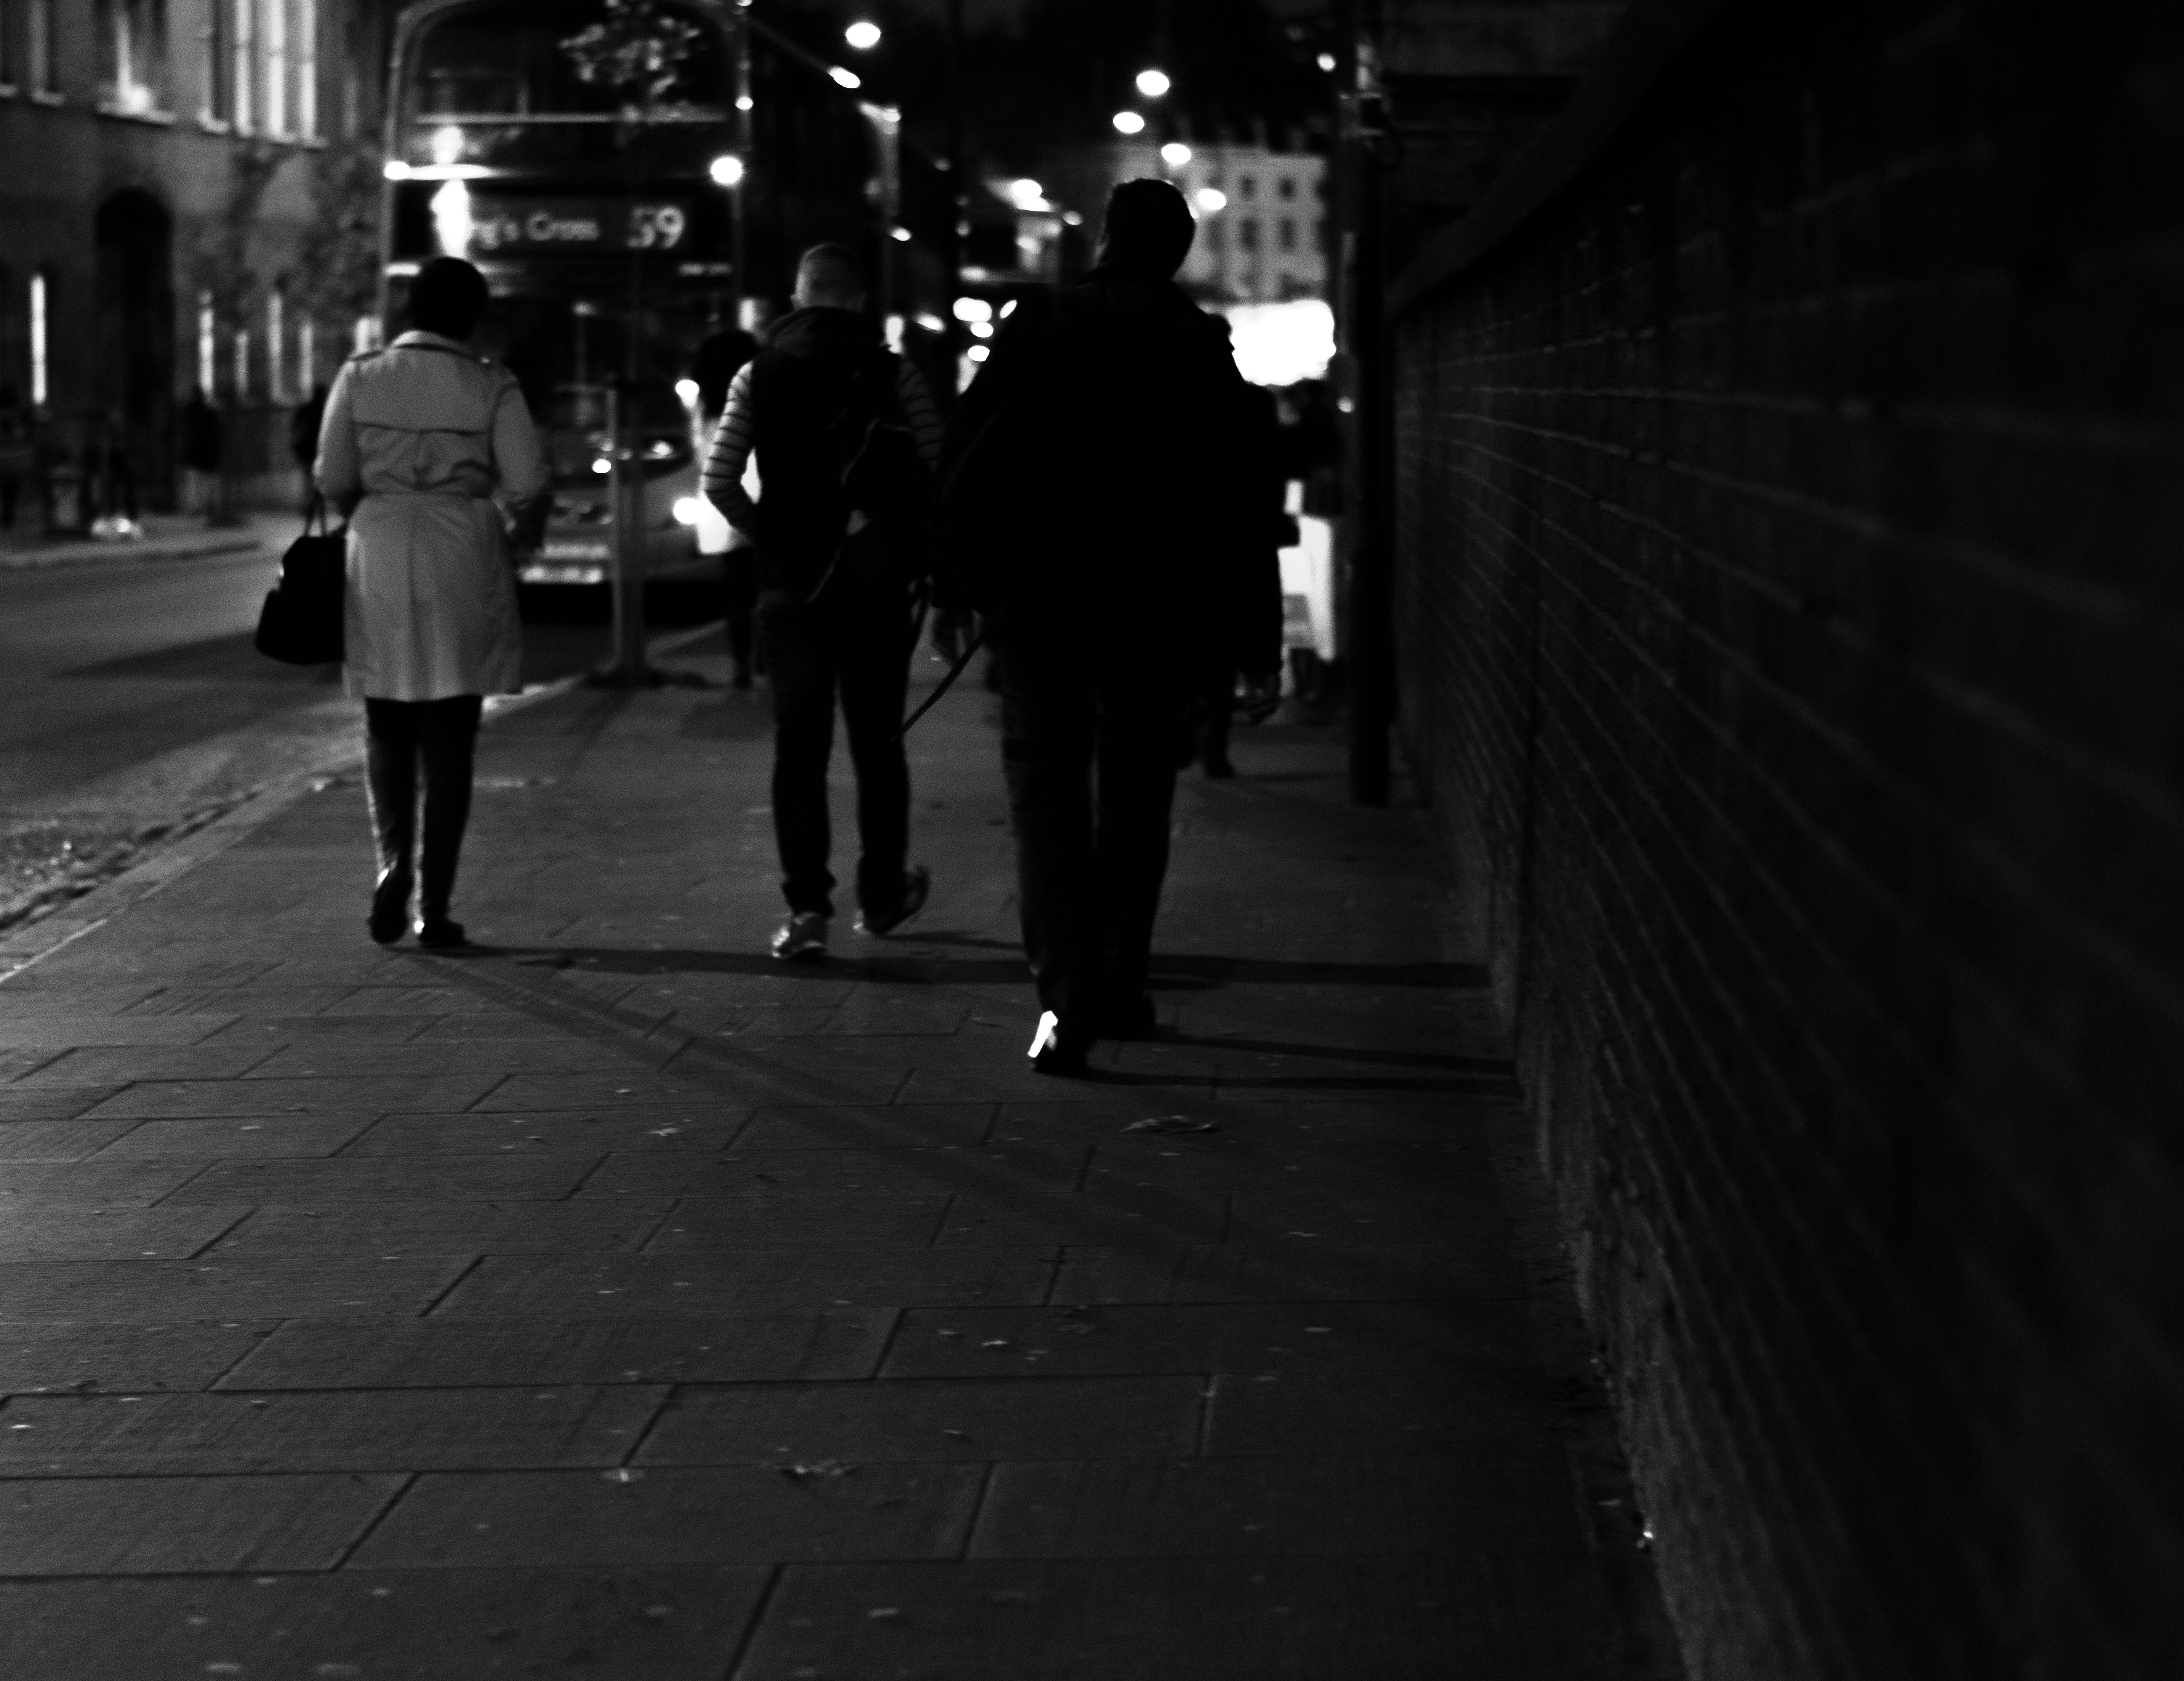 Following - London, England